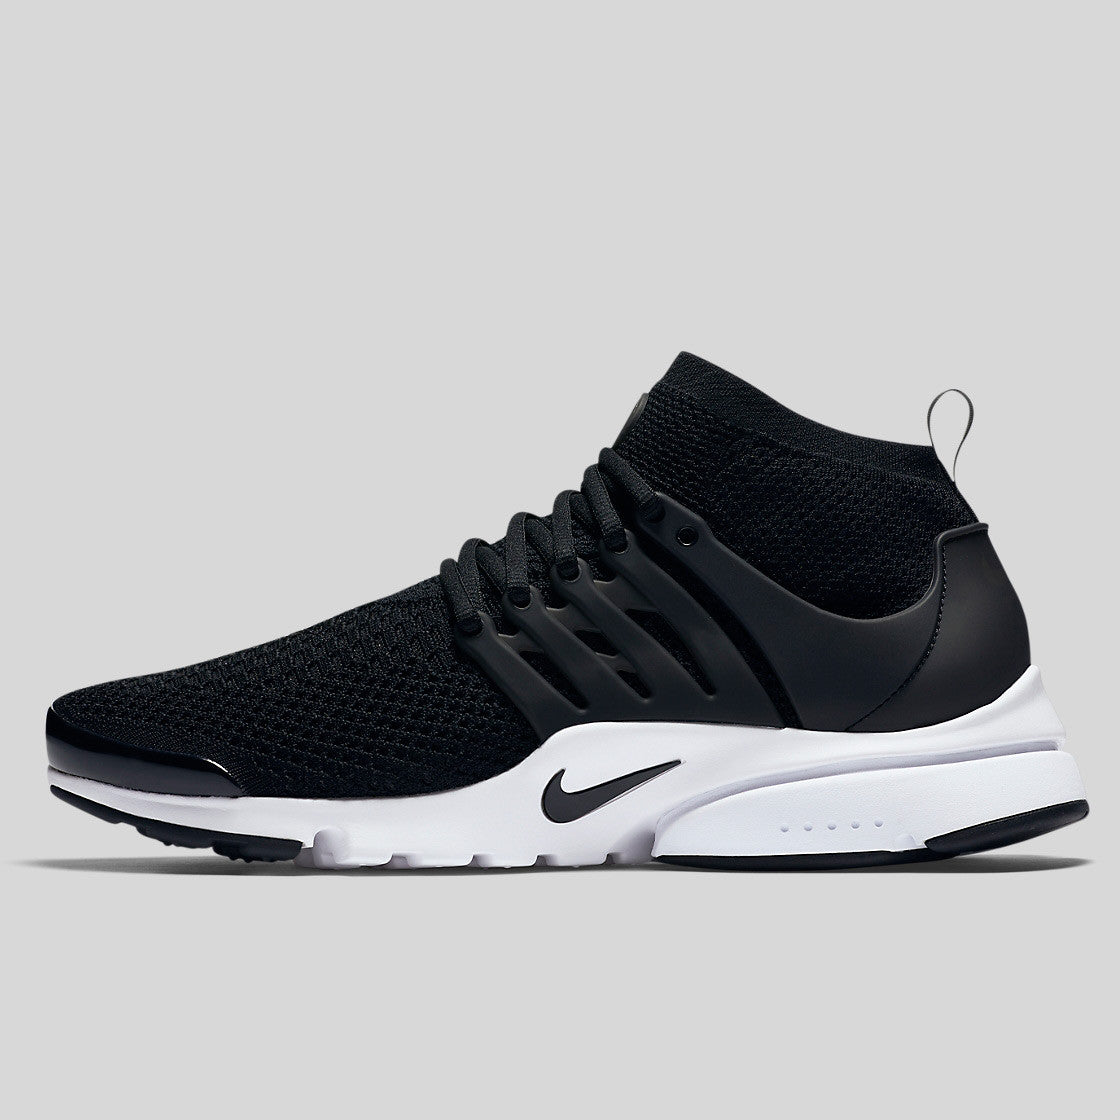 170e9c3332d Nike Air Presto Flyknit Ultra Black White (835570-001)